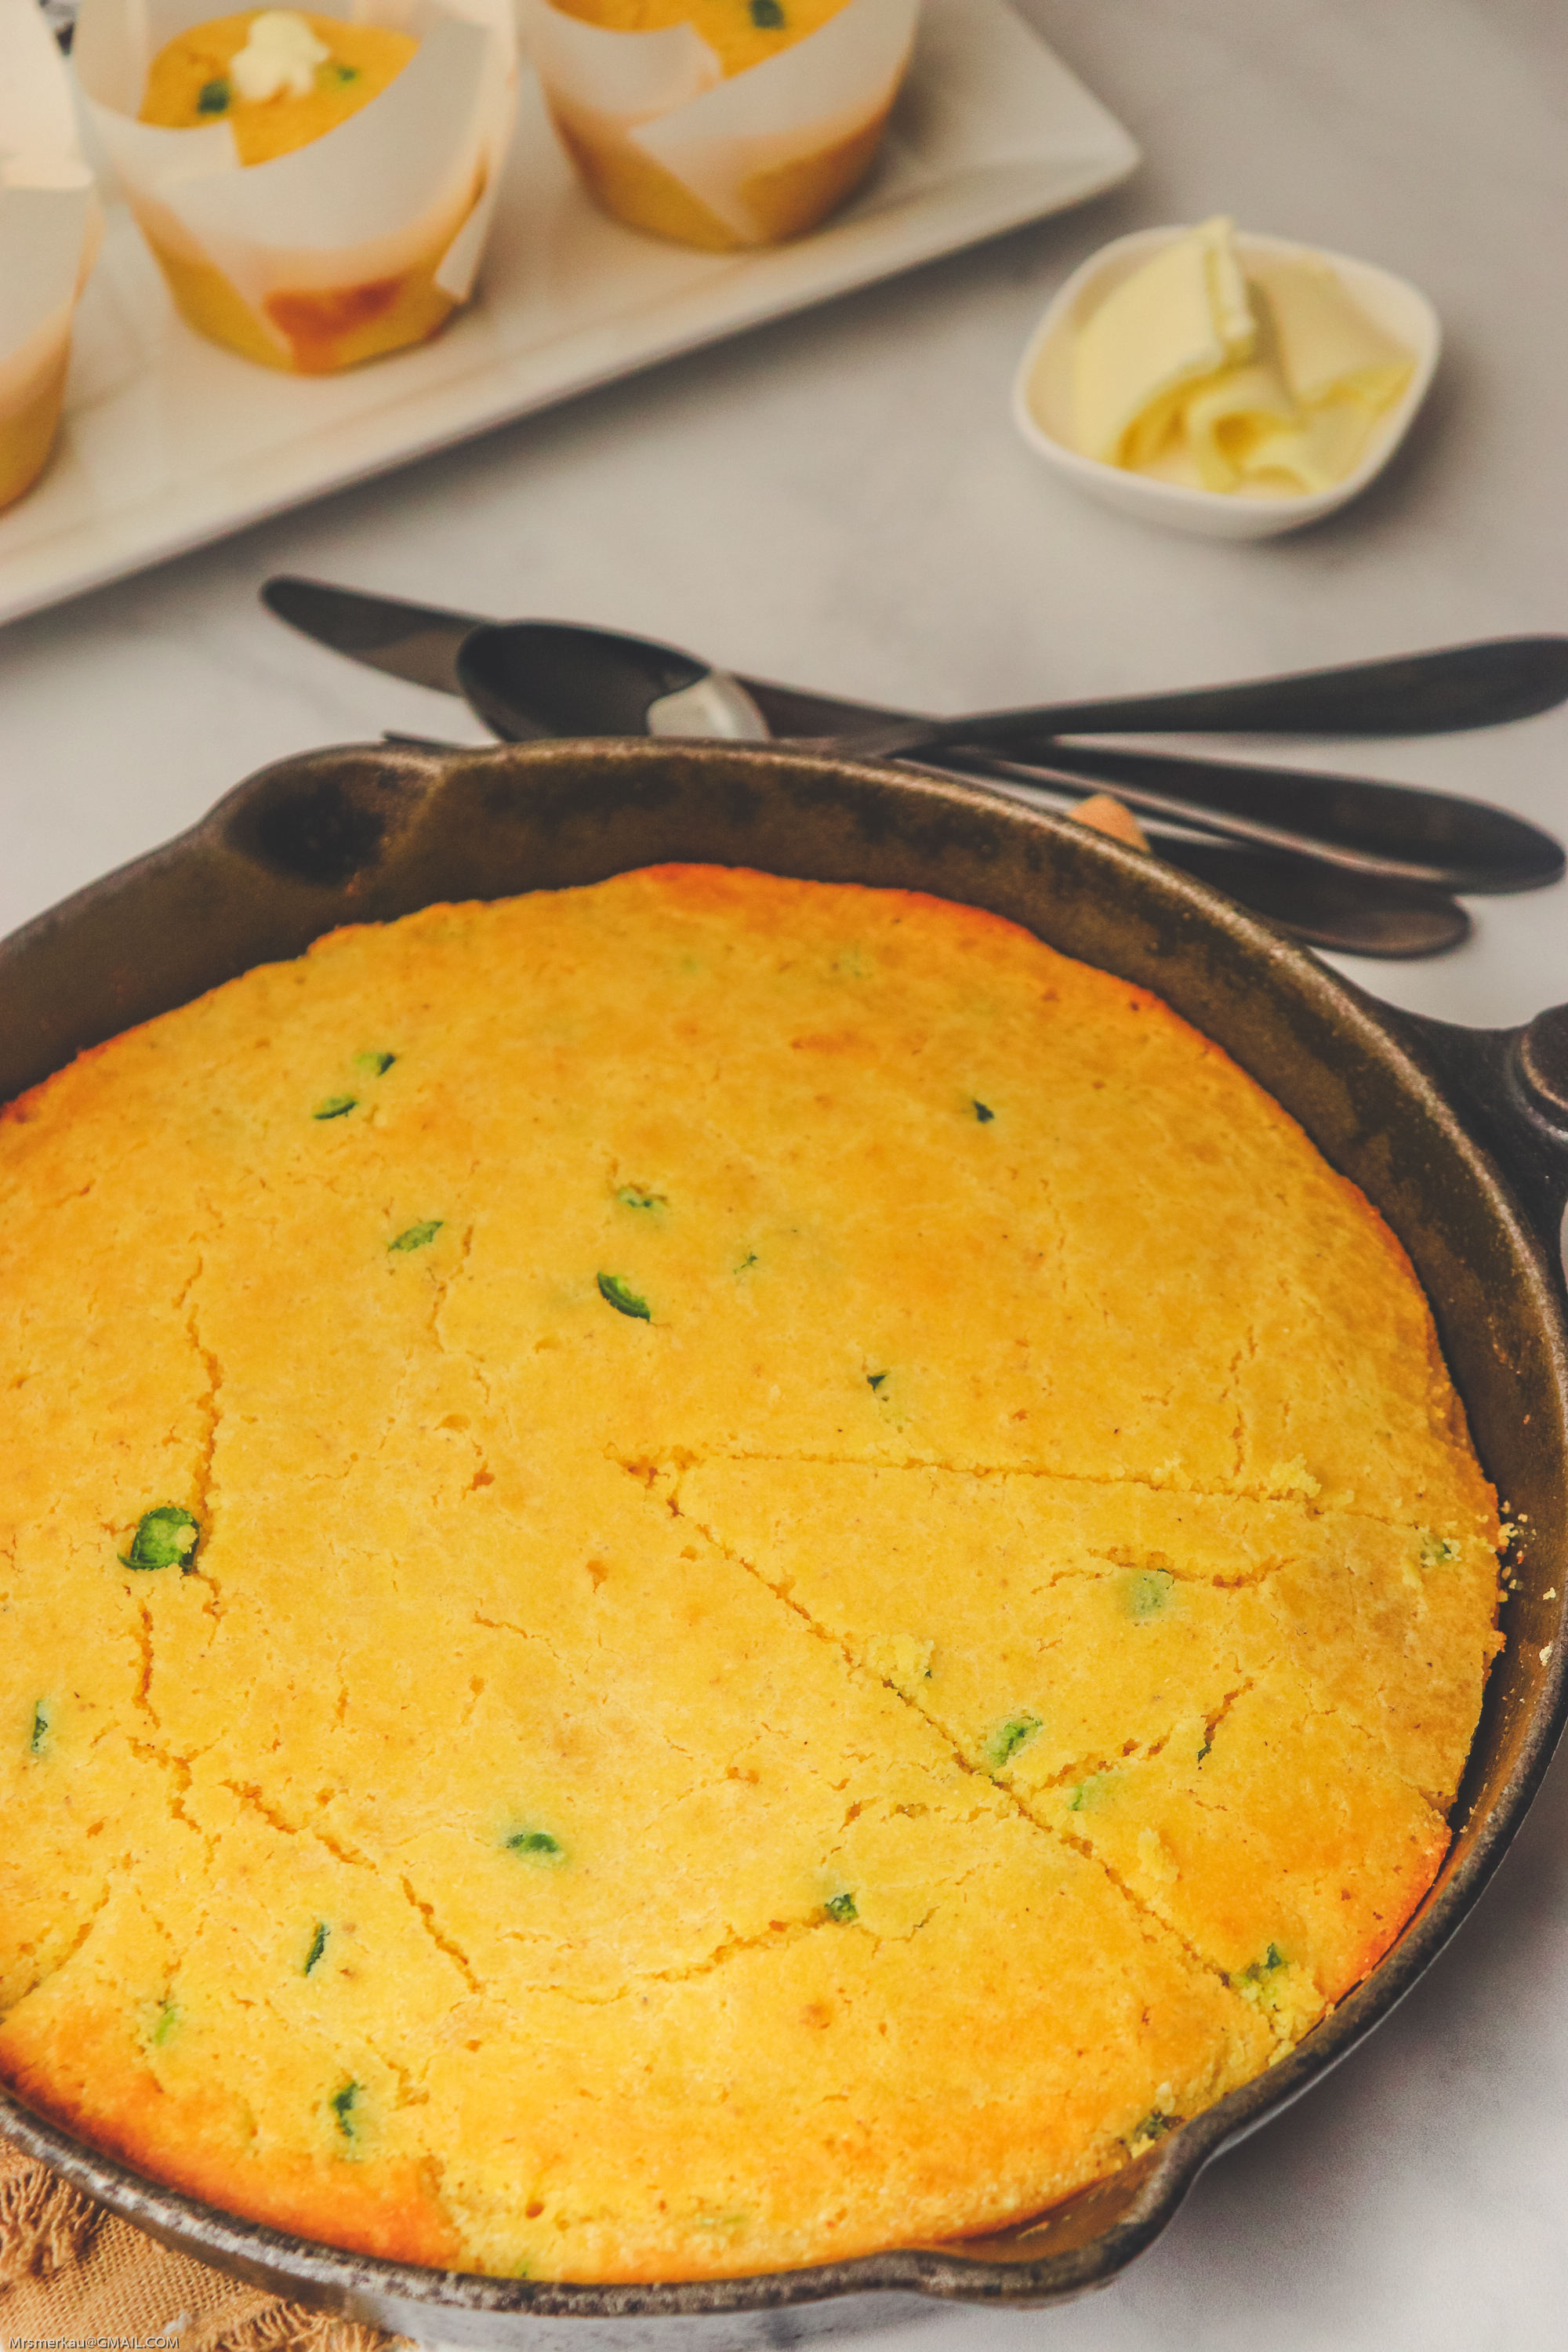 This cornbread skillet recipe is the easiest and best tasting cornbread. Seasoned with jalapeno peppers, this cornbread recipe makes an amazing side dish to any of your favorite meals.